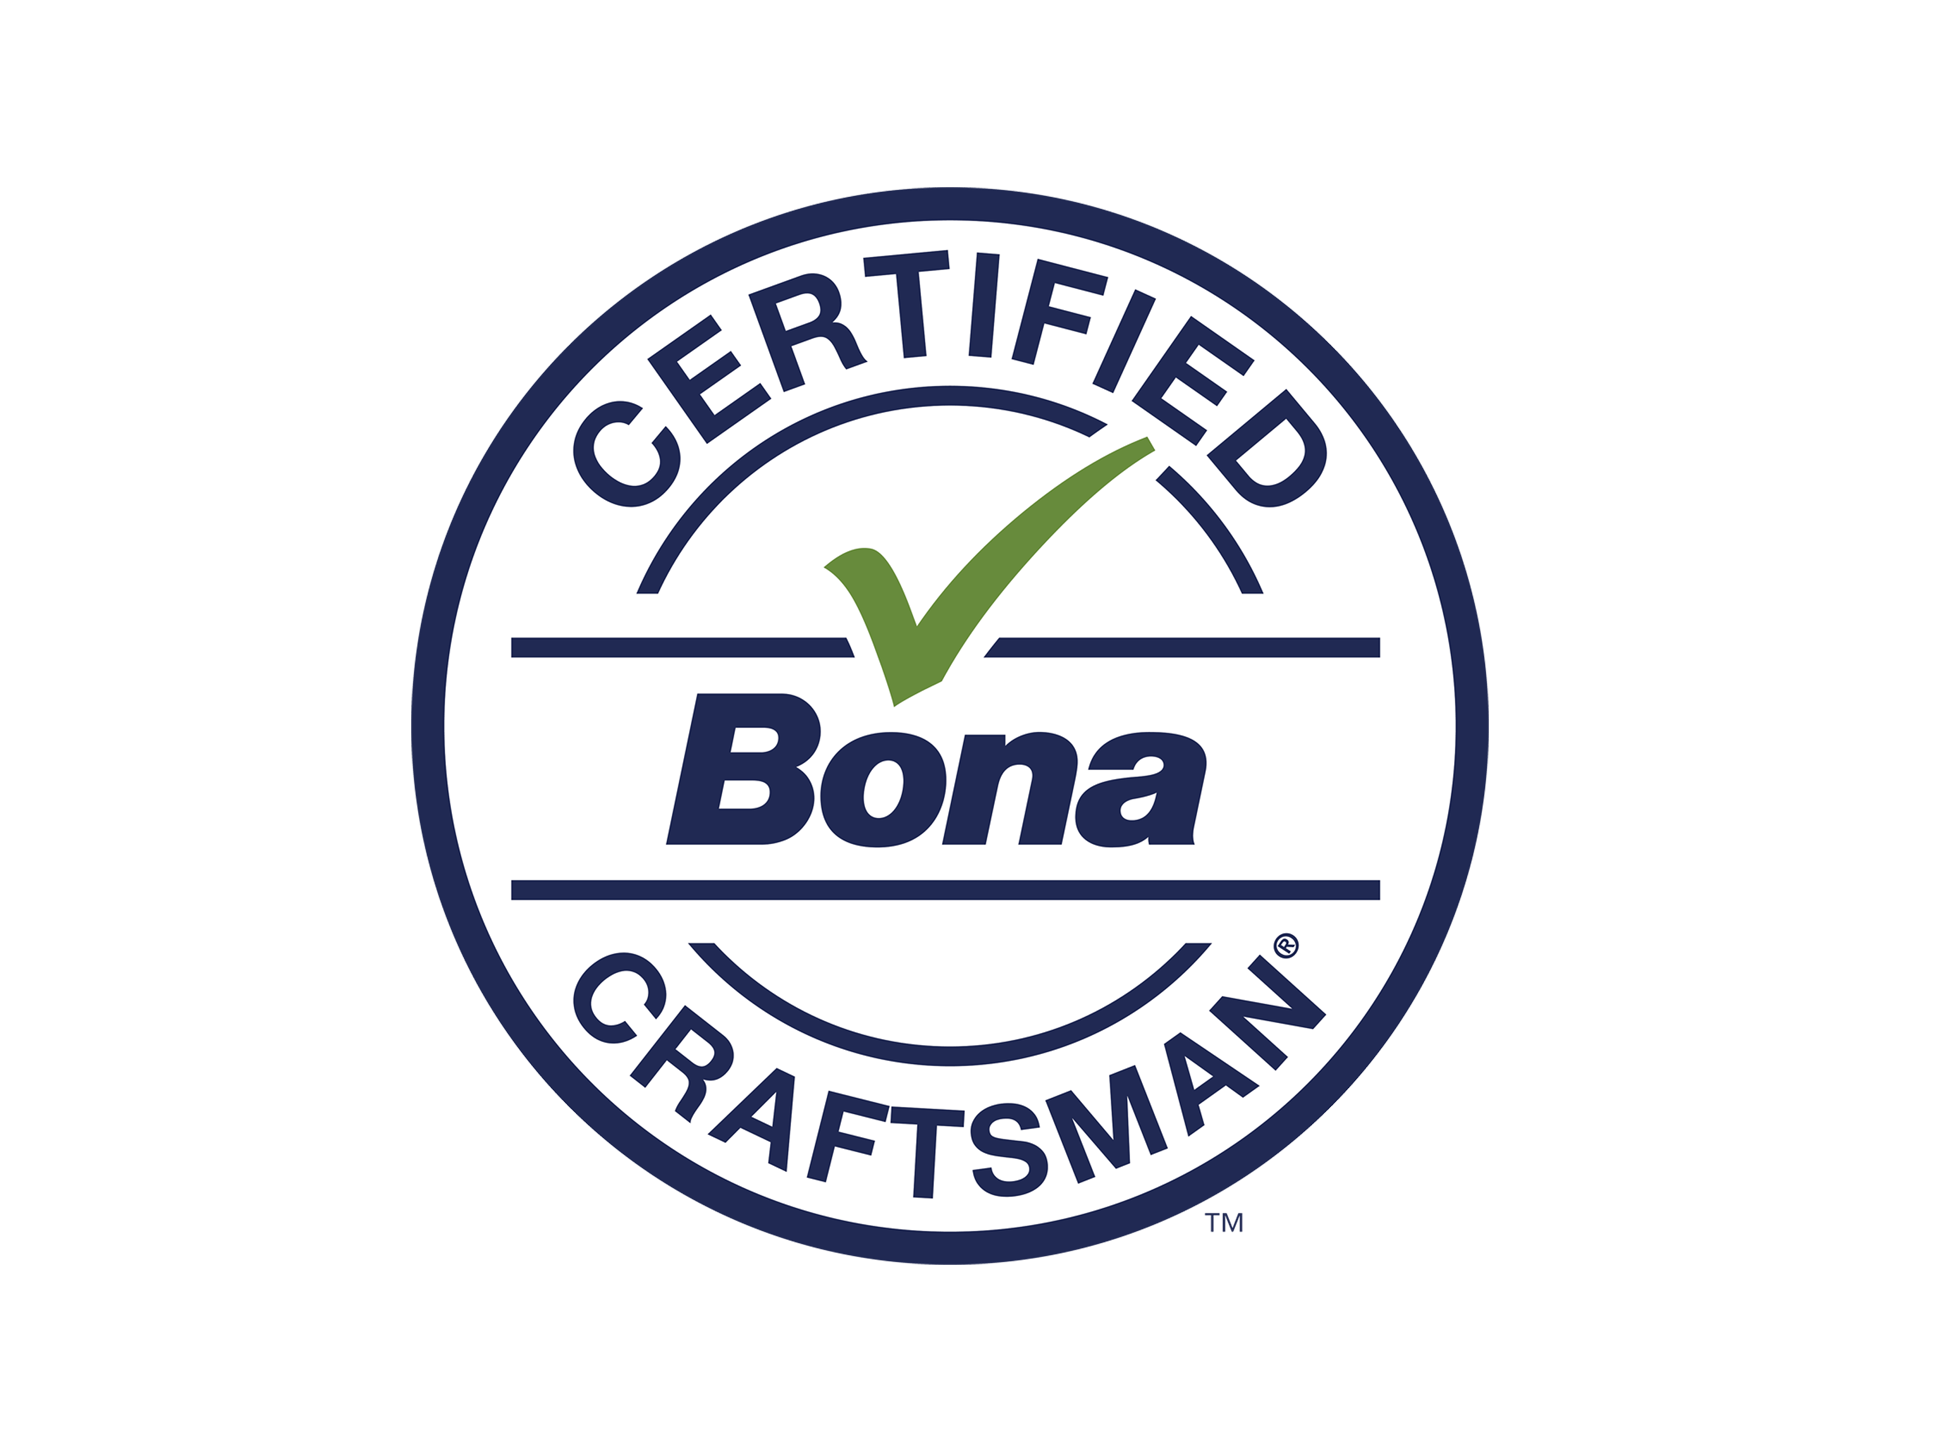 Save Time with a Trusted Bona Certified Craftsman